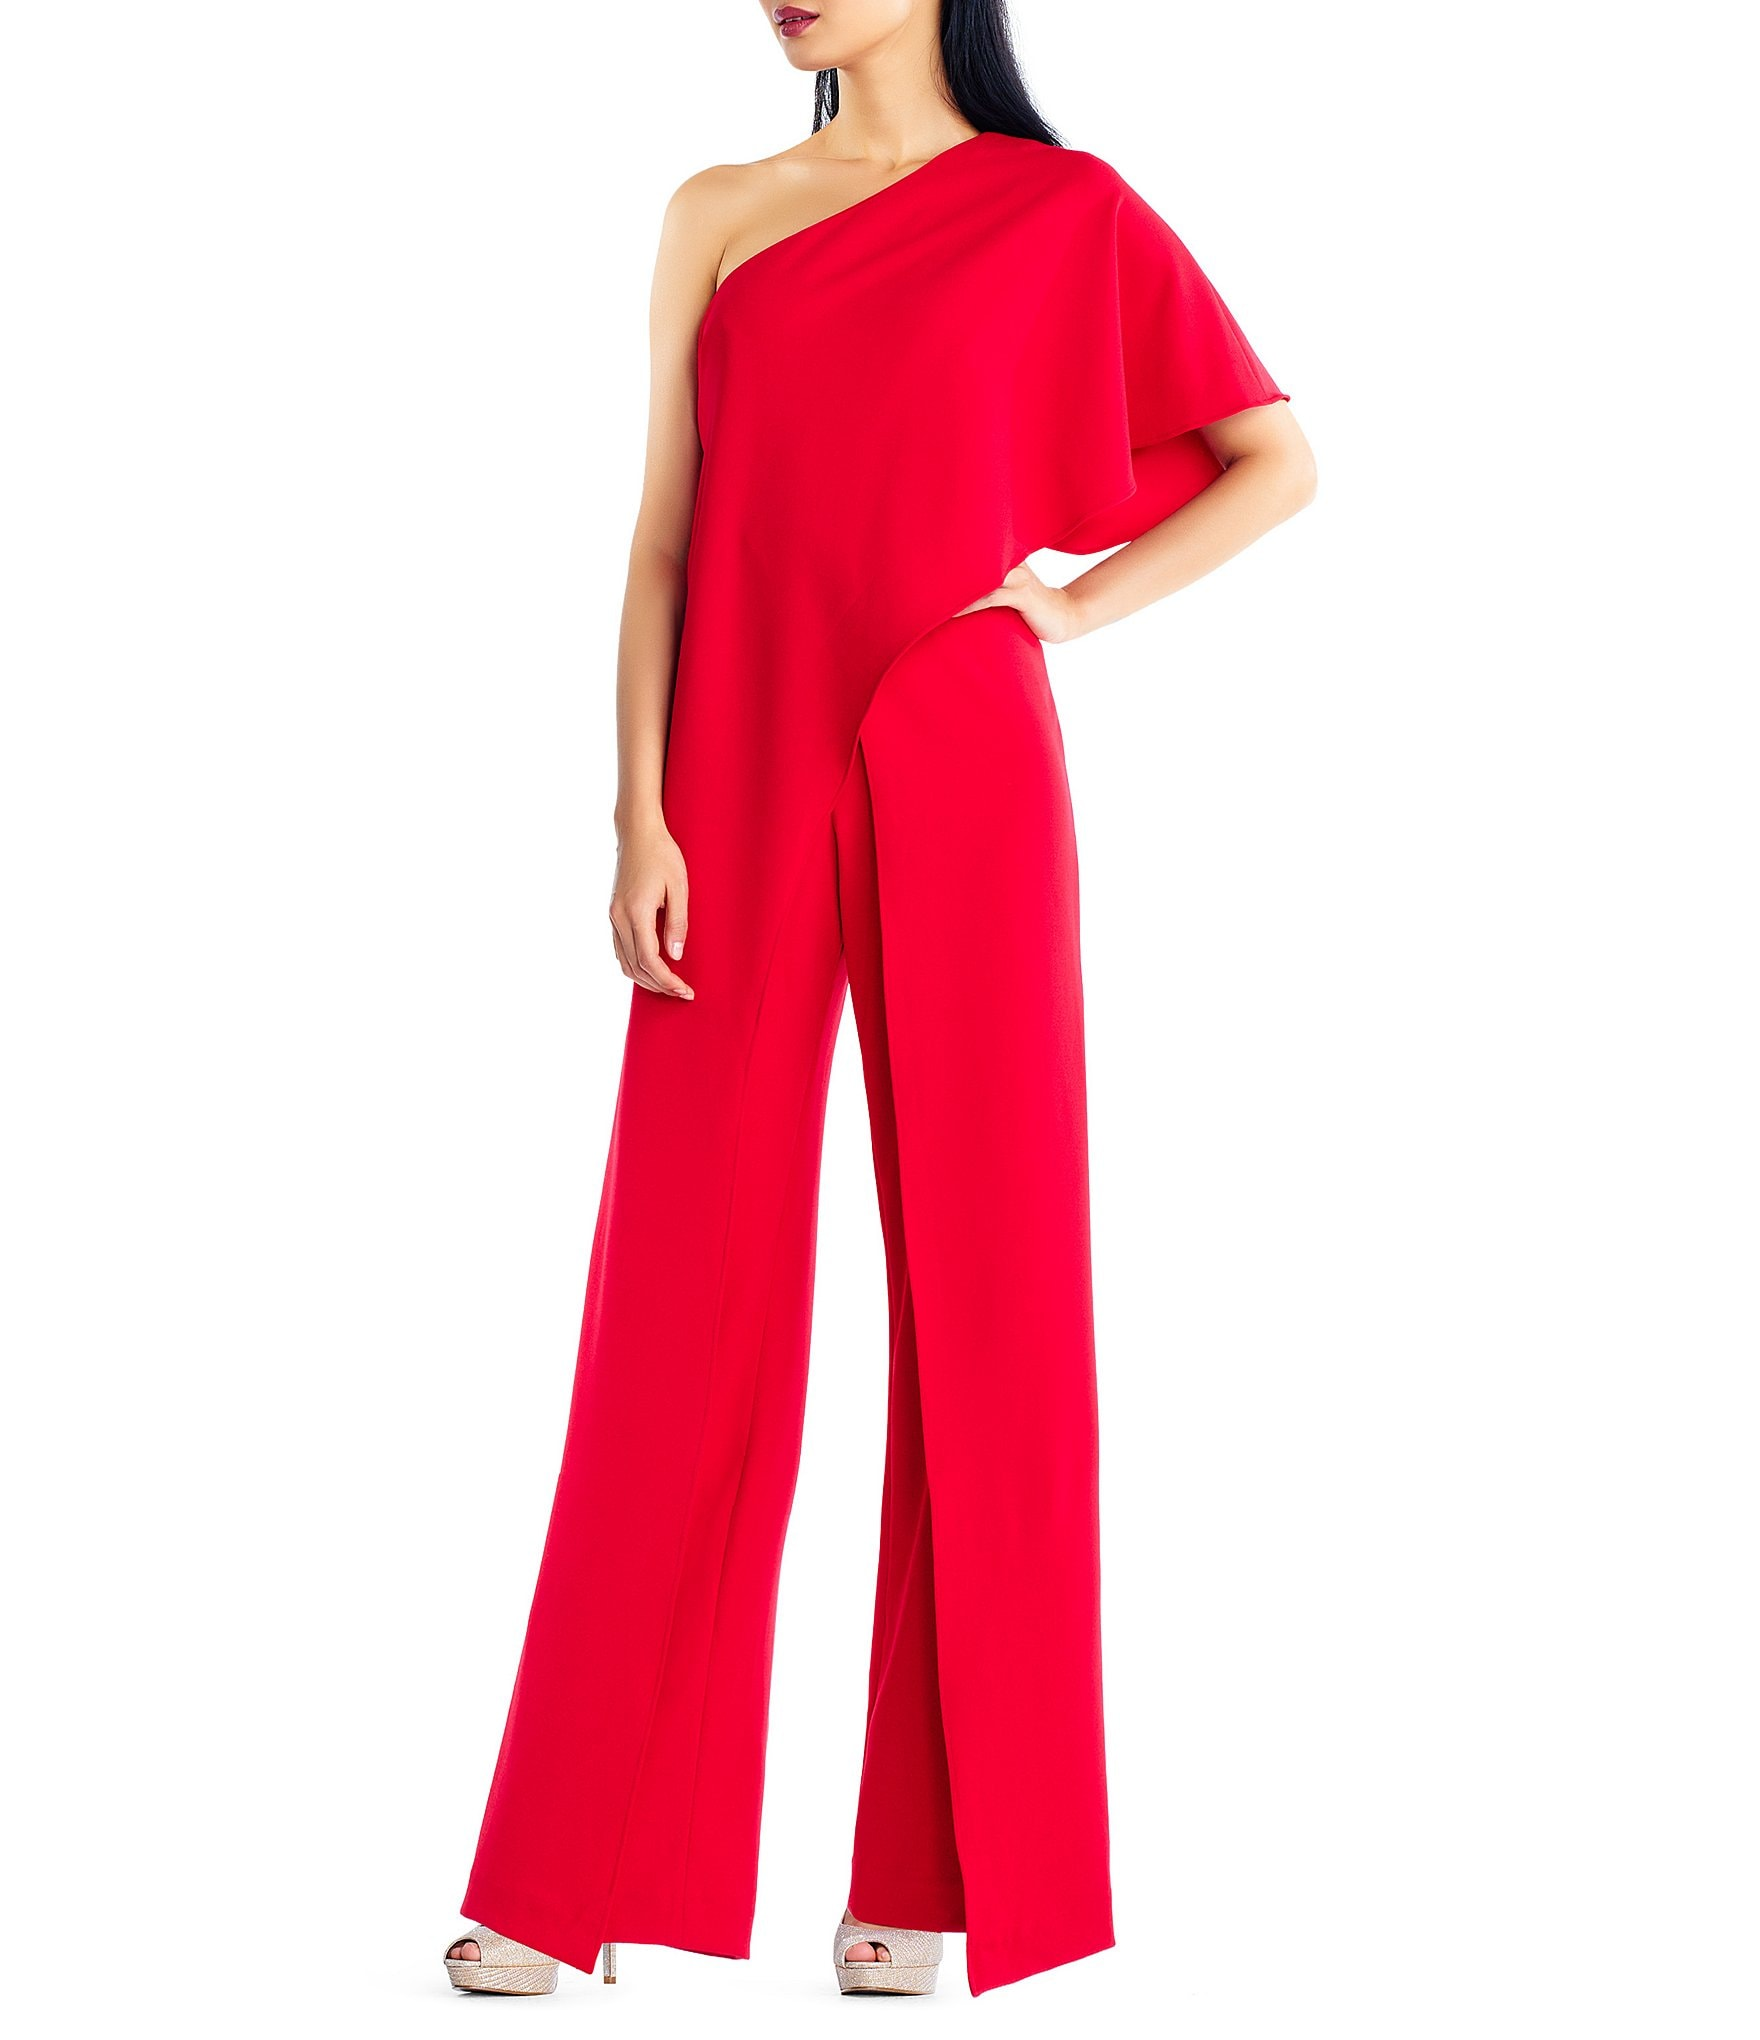 34f64443a8 red jumpsuit  Women s Clothing   Apparel